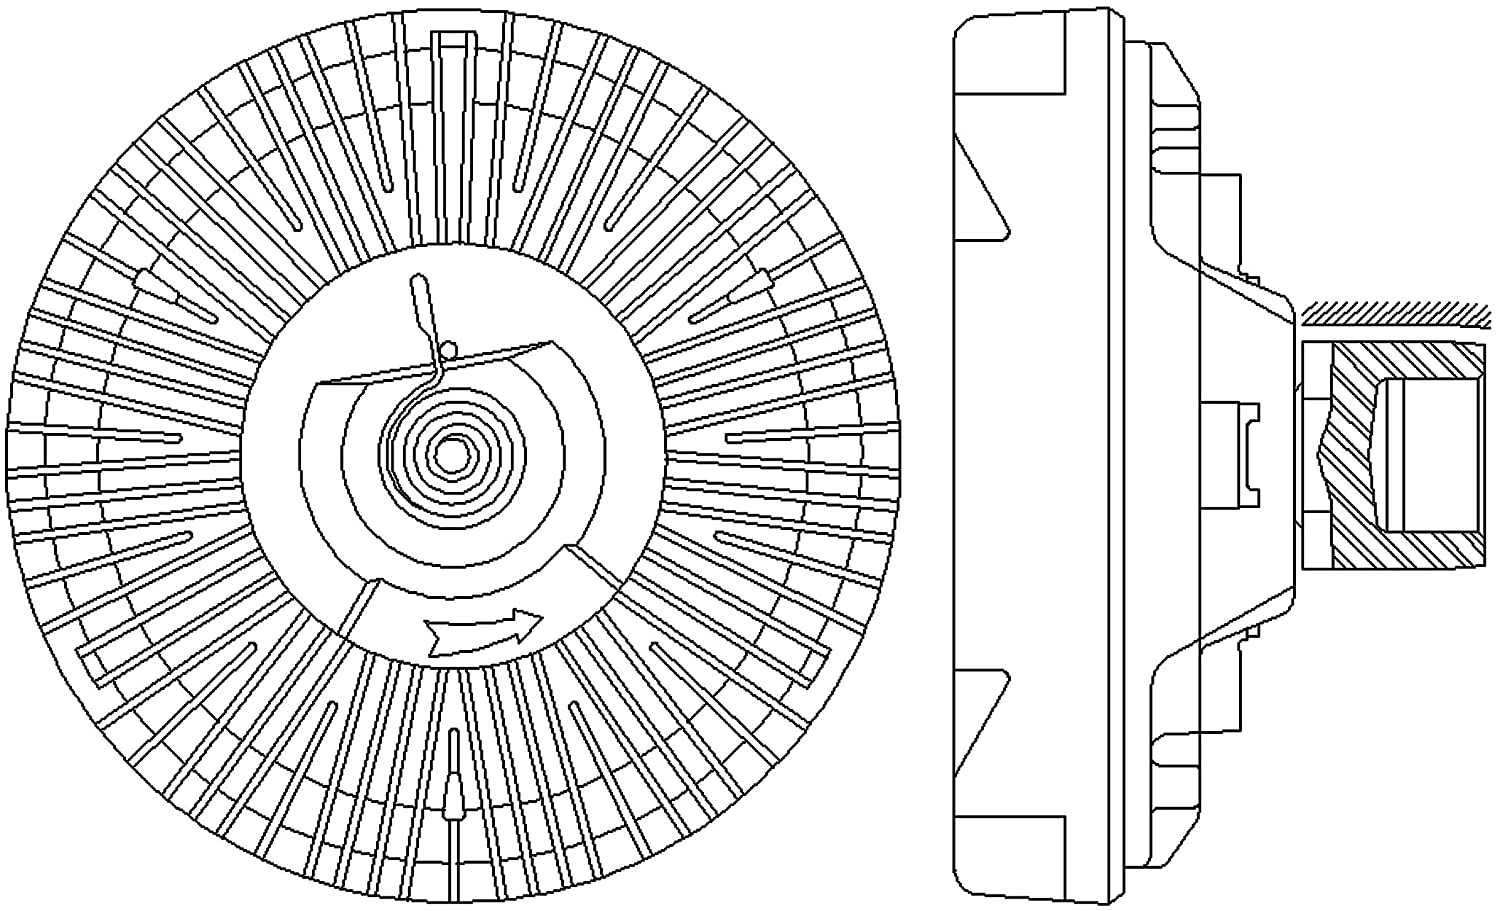 Acdelco 15 4694 Gm Original Equipment Engine Cooling Fan 1985 Trans Am Wiring Diagram Electric Clutch Automotive